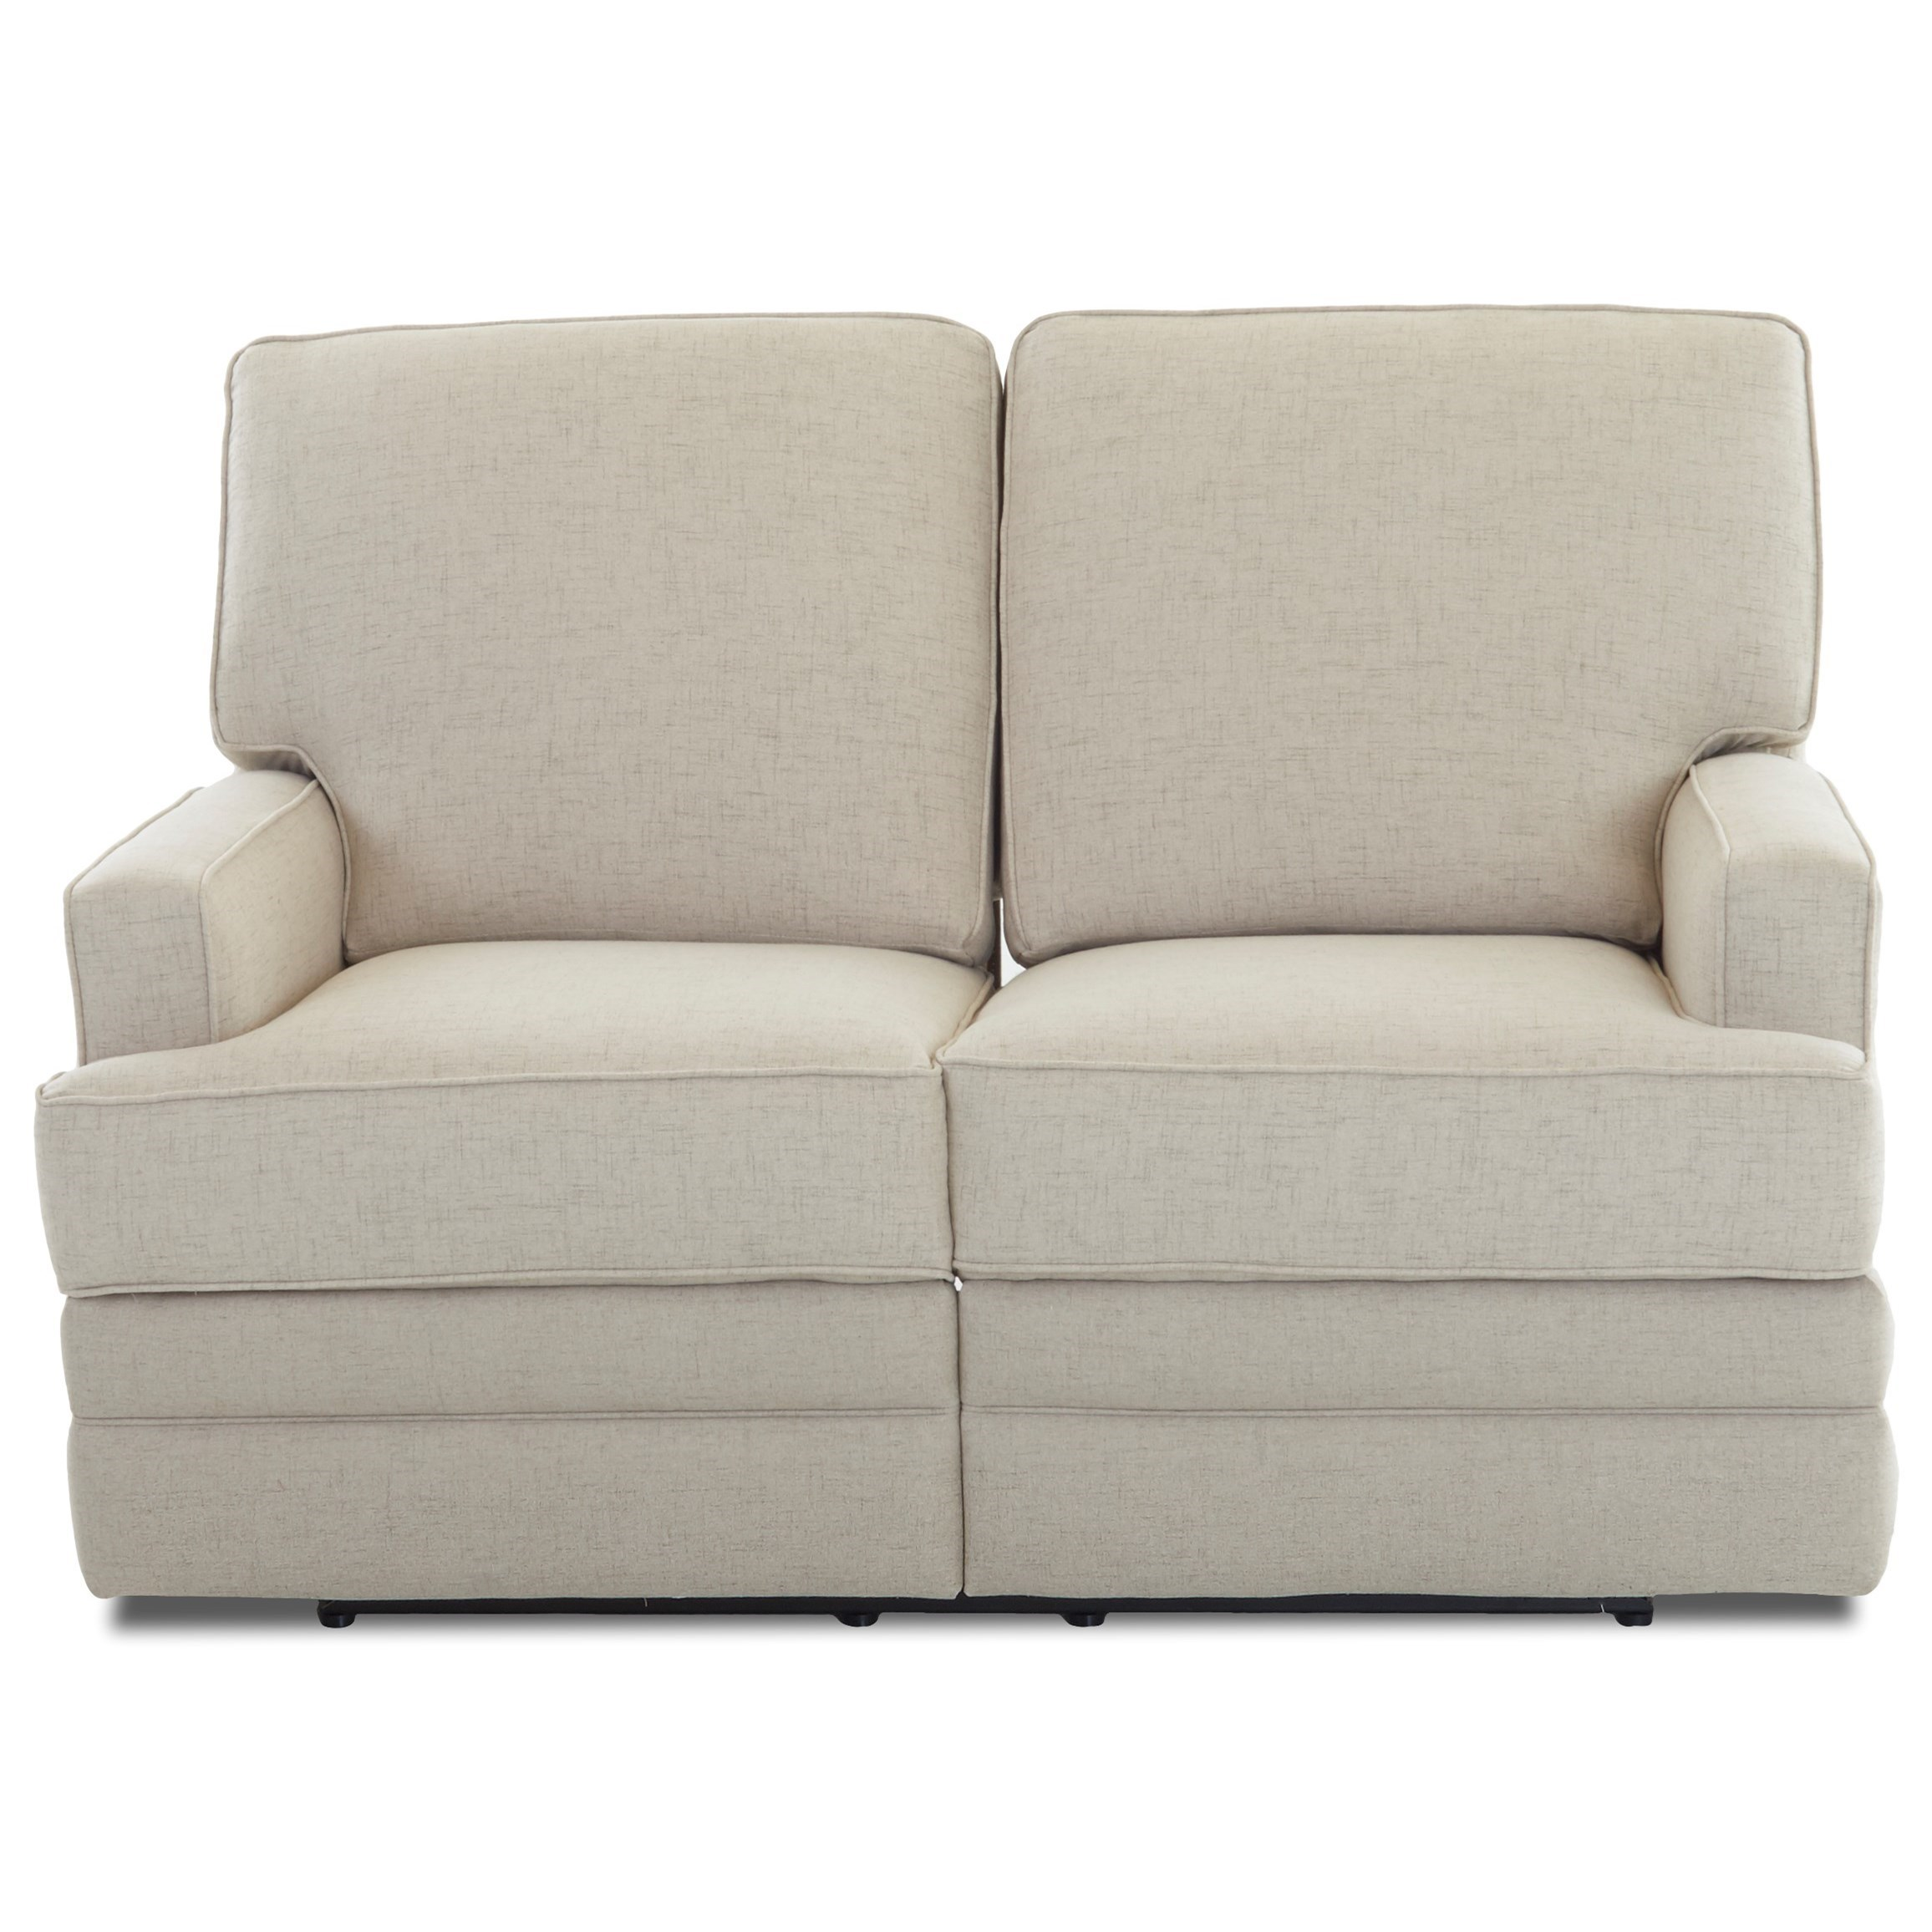 Chapman Casual Reclining Loveseat by Klaussner at Johnny Janosik